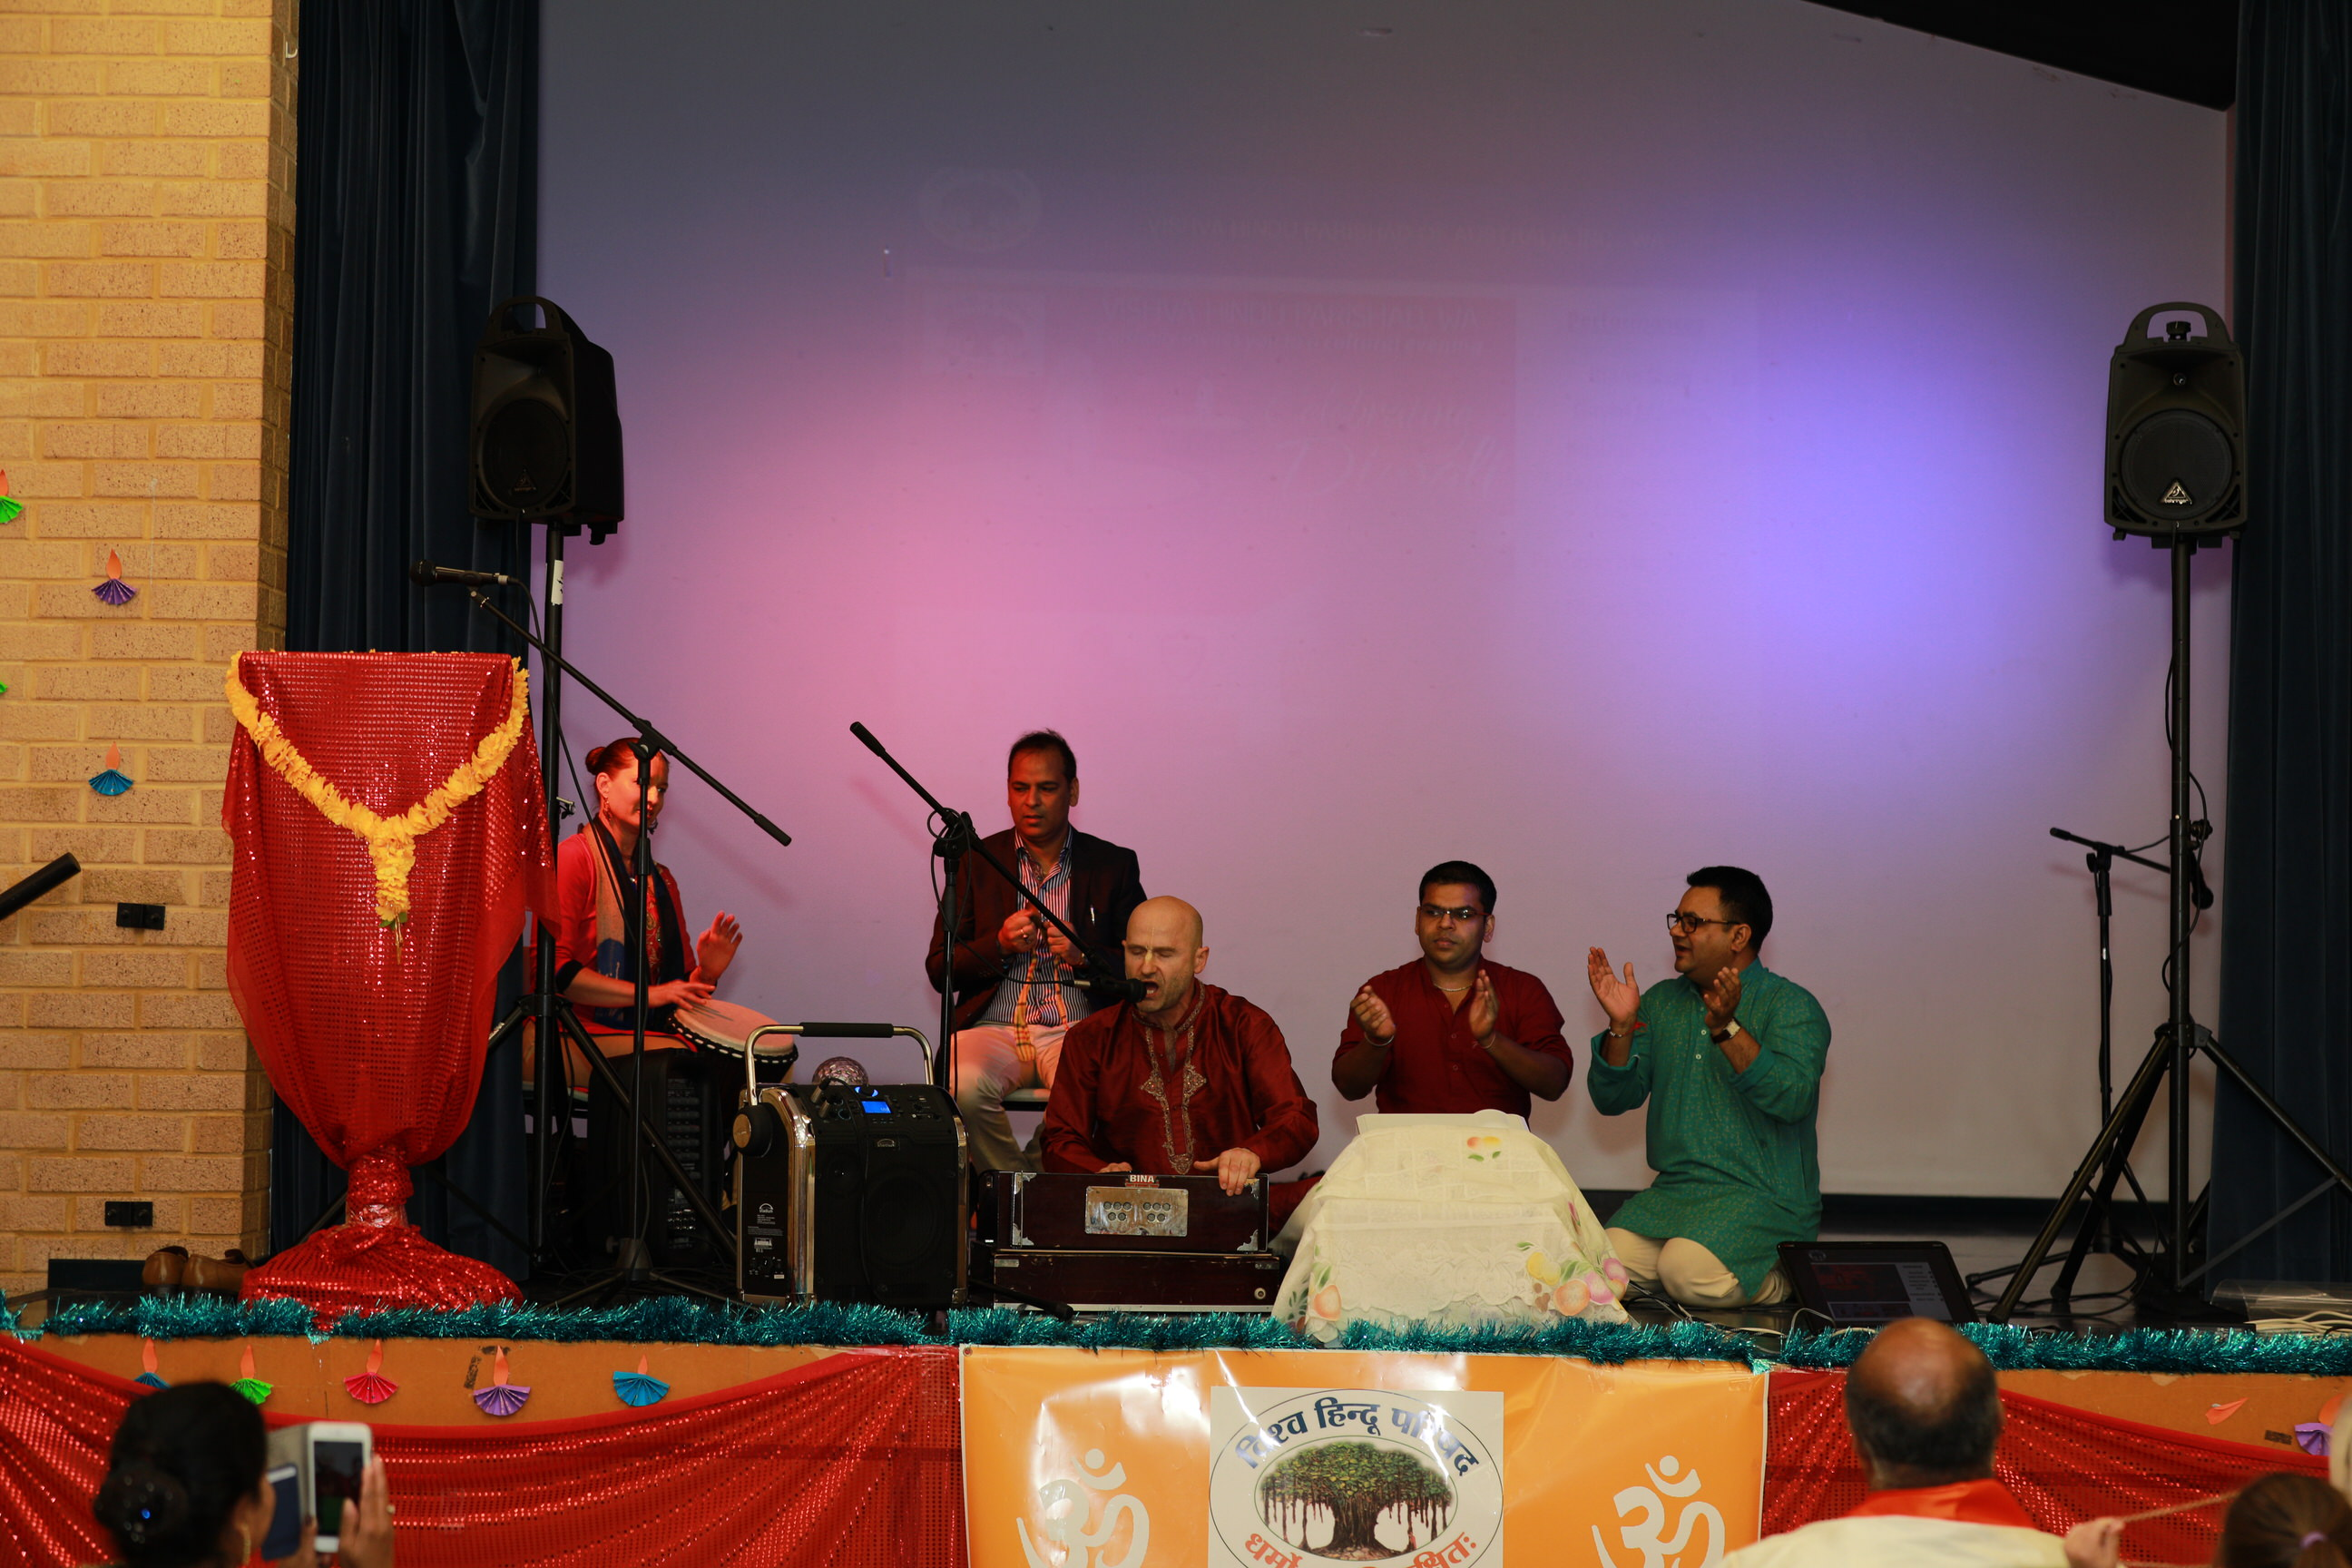 Lighting Stores Mandurah Vishva Hindu Parishad Hosts Diwali Celebrations In